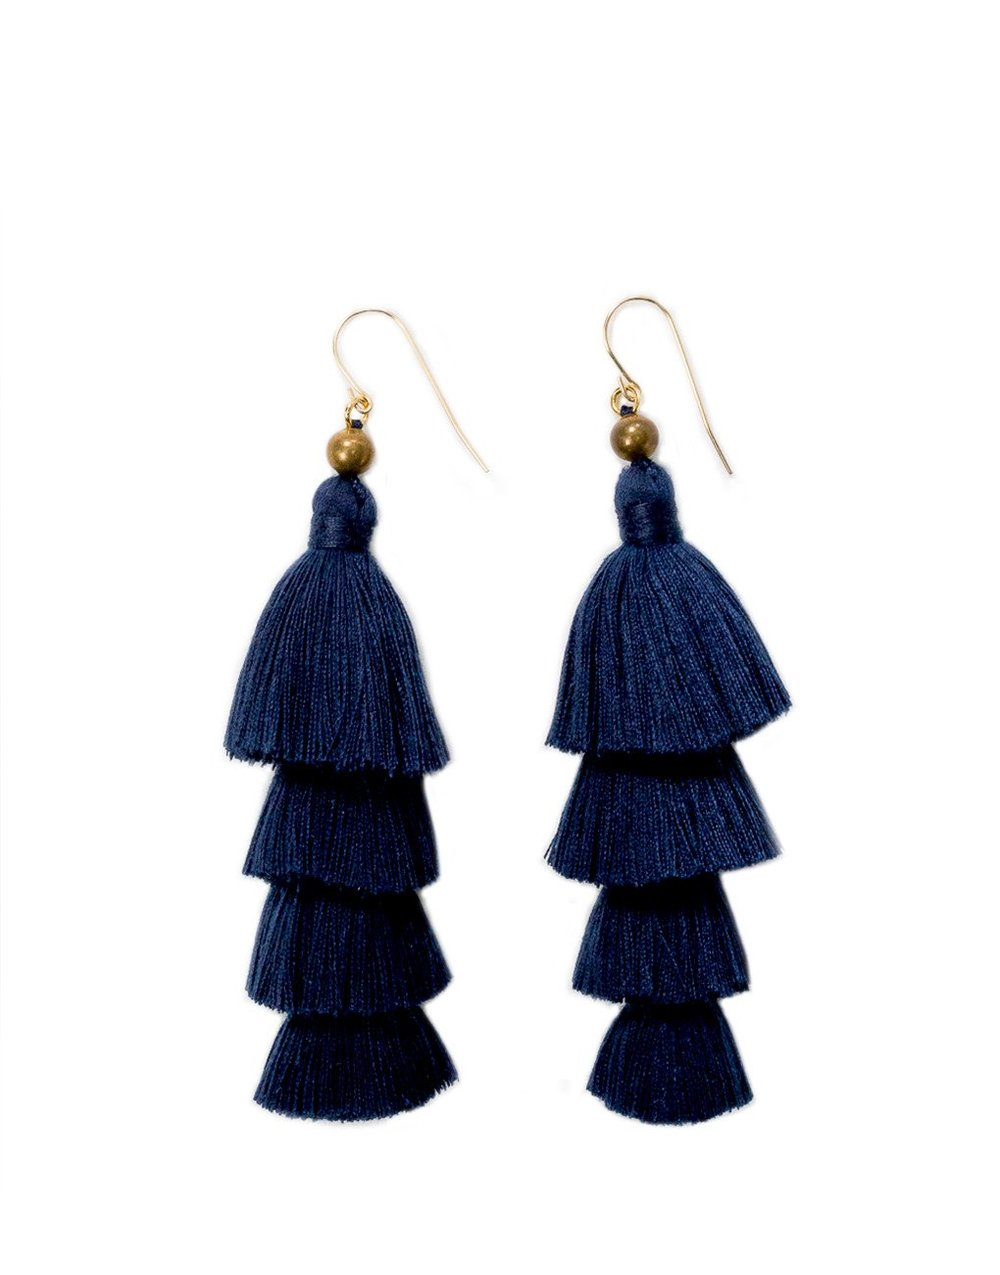 THE LITTLE MARKET   Layered Tassel Earrings - Navy